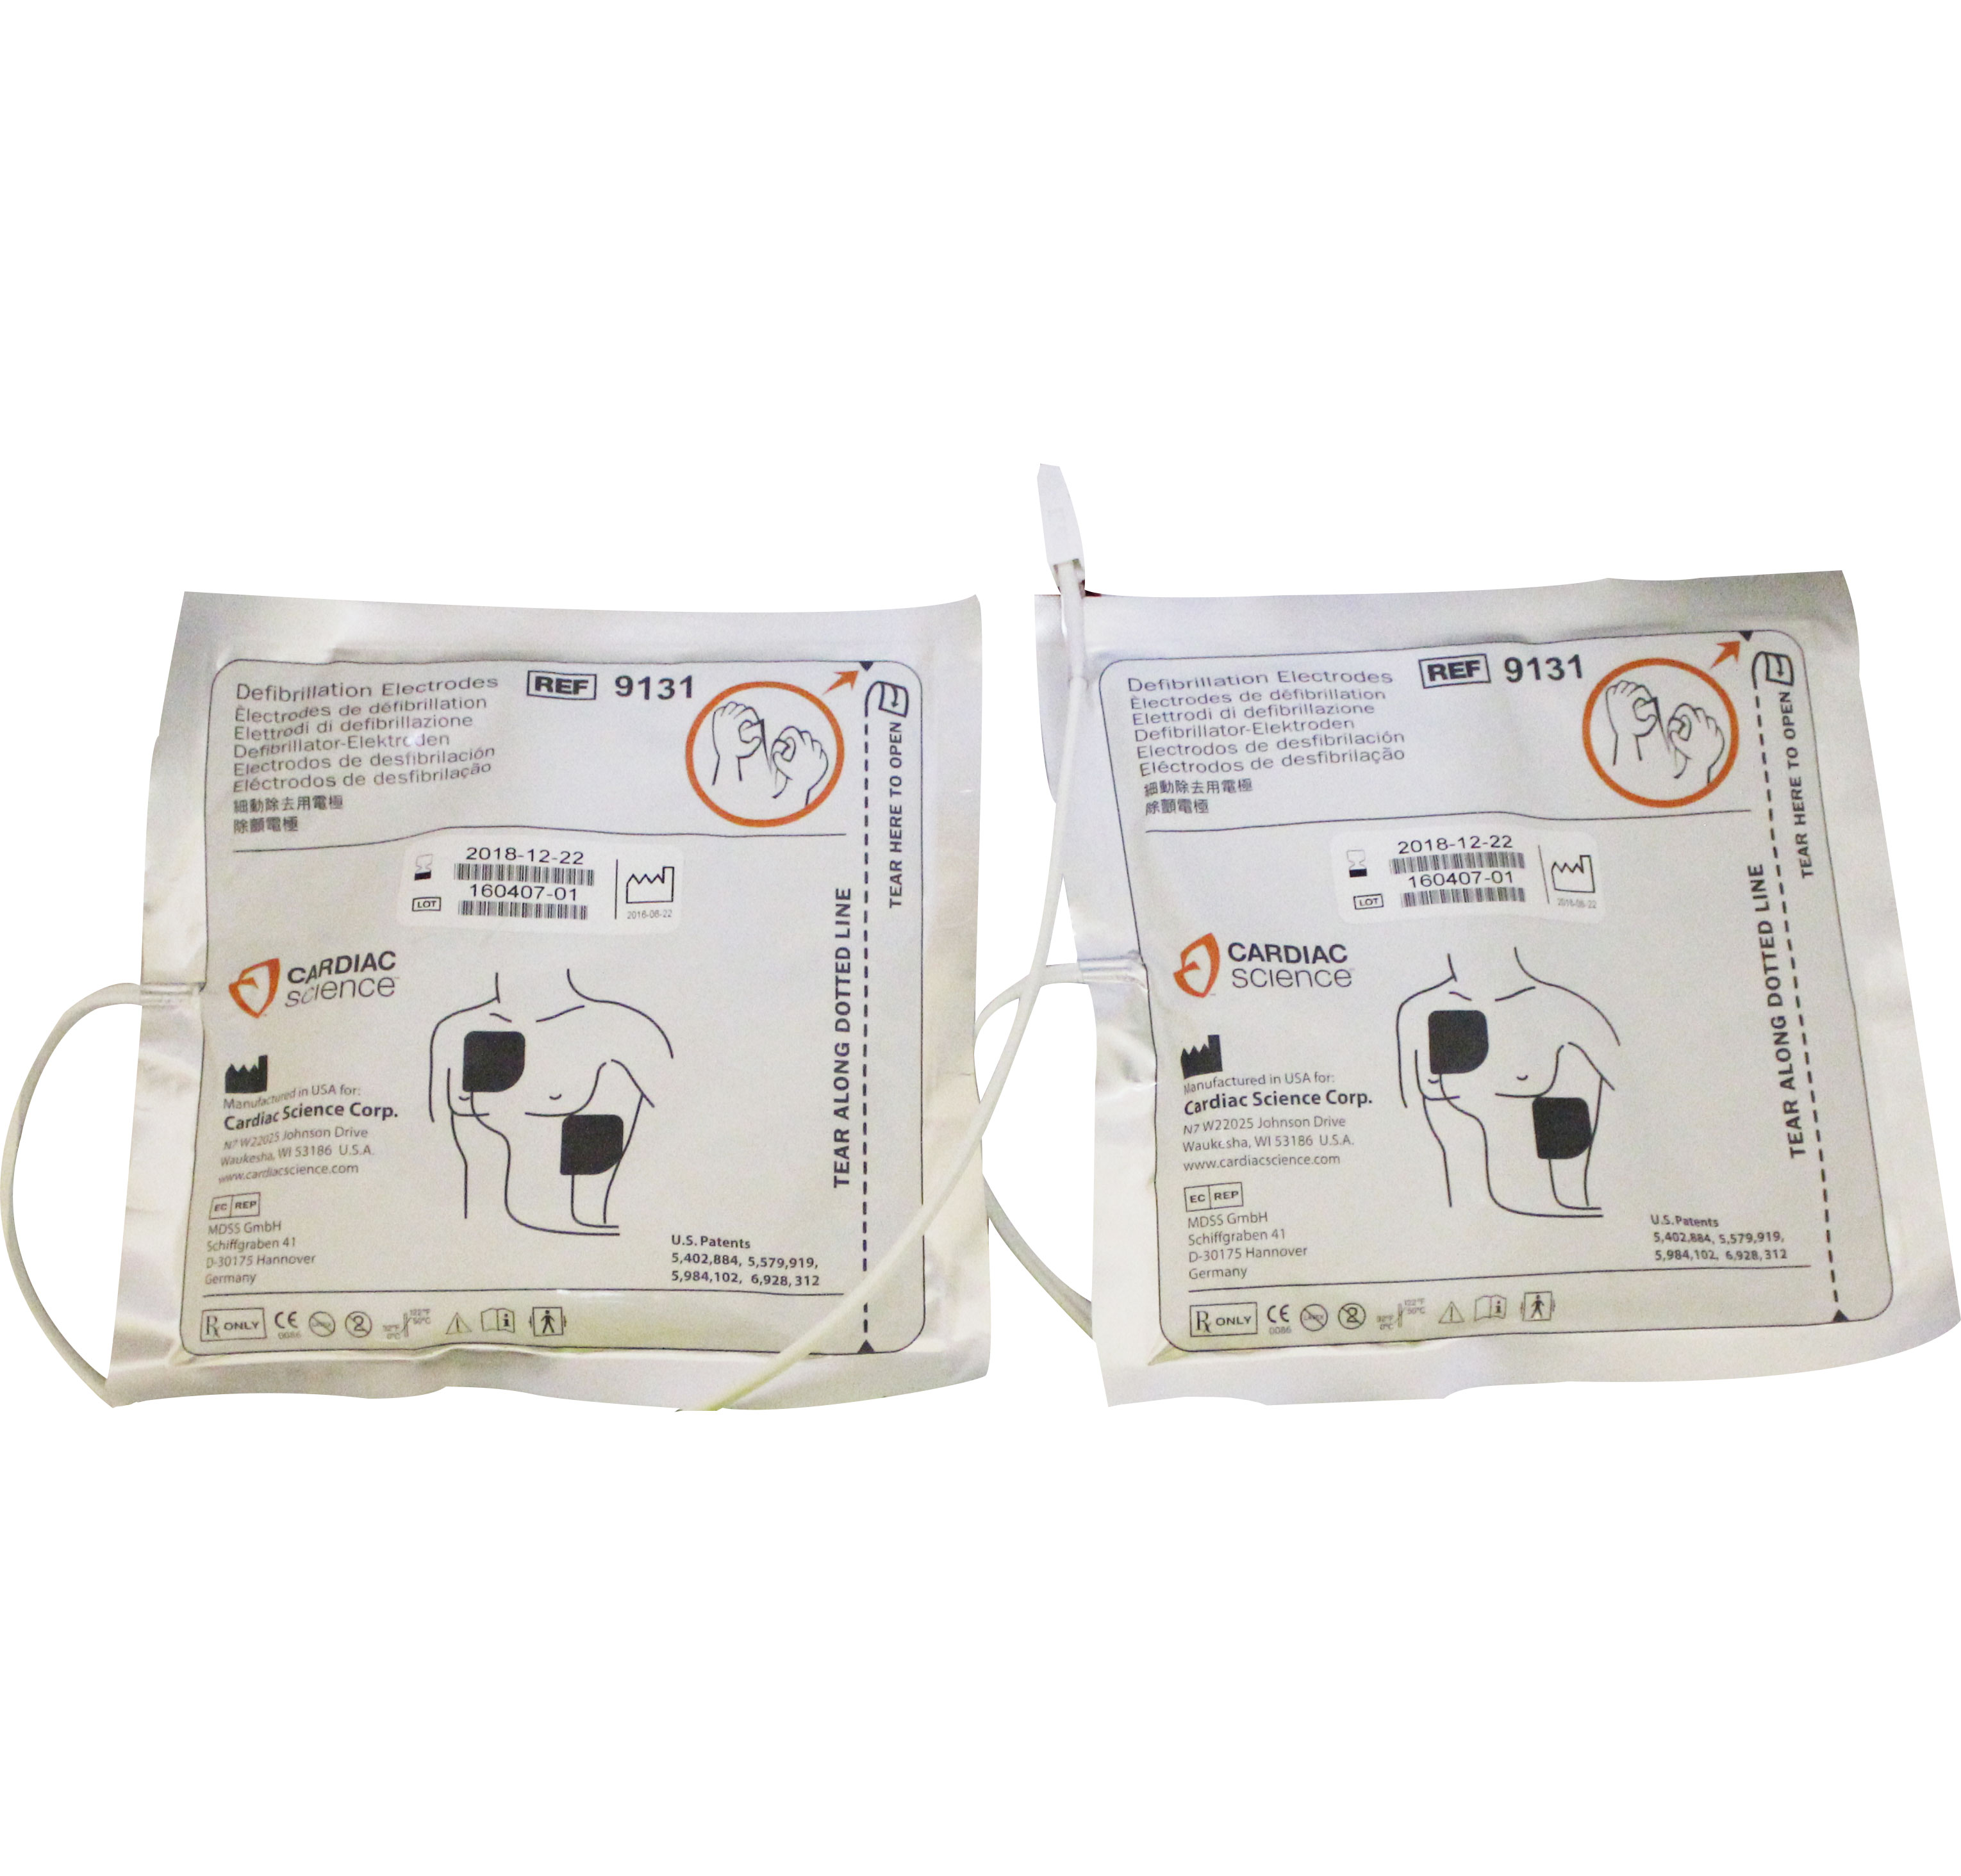 G3 - Defibrillation Pads (Adult) image